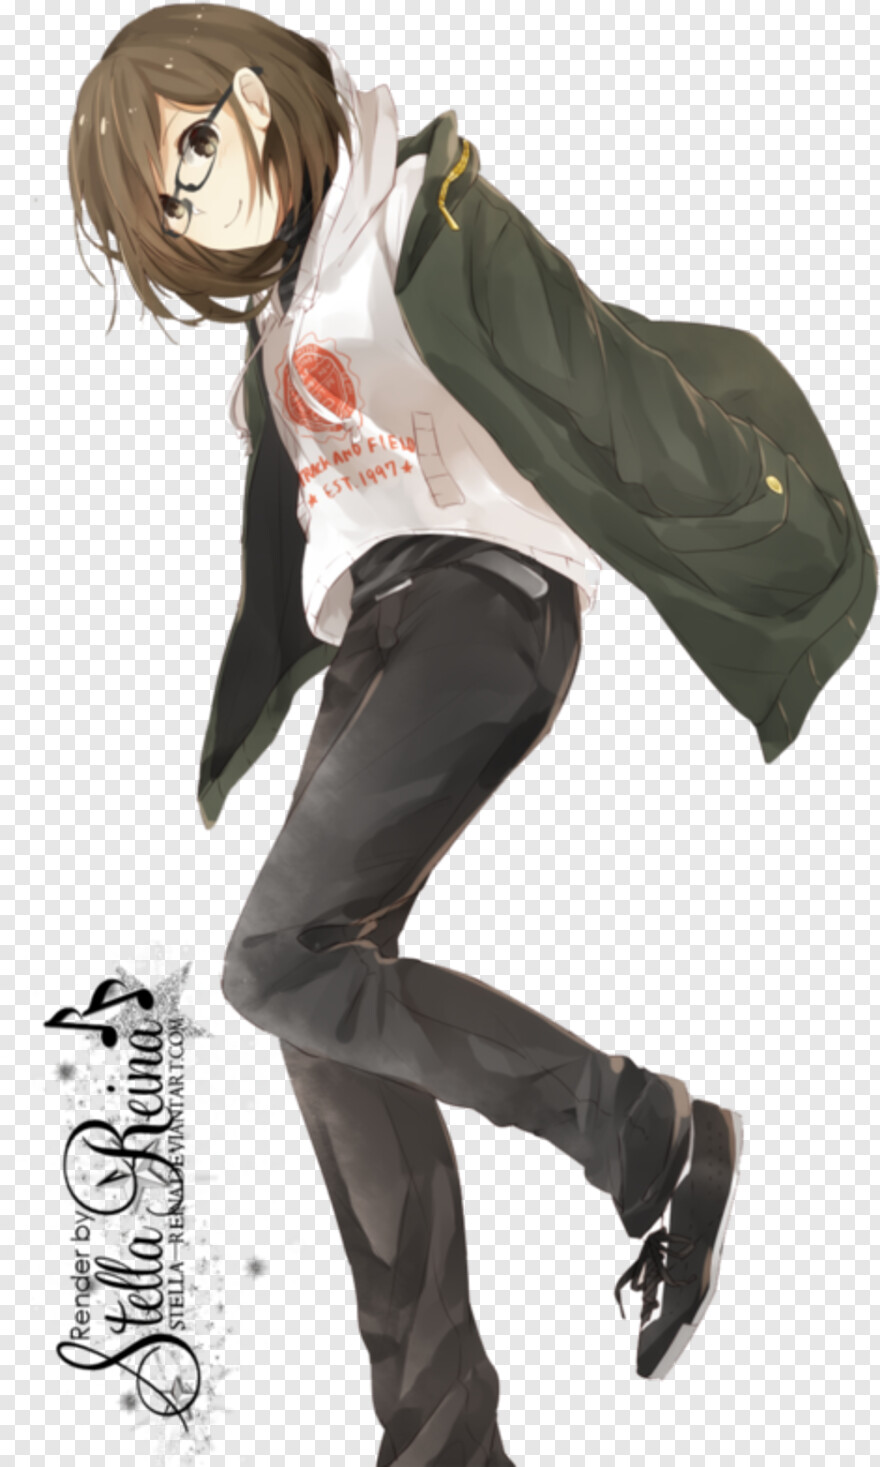 Anime Glasses Short Brown Haired Anime Girl Hd Png Download 500x785 10165745 Png Image Pngjoy